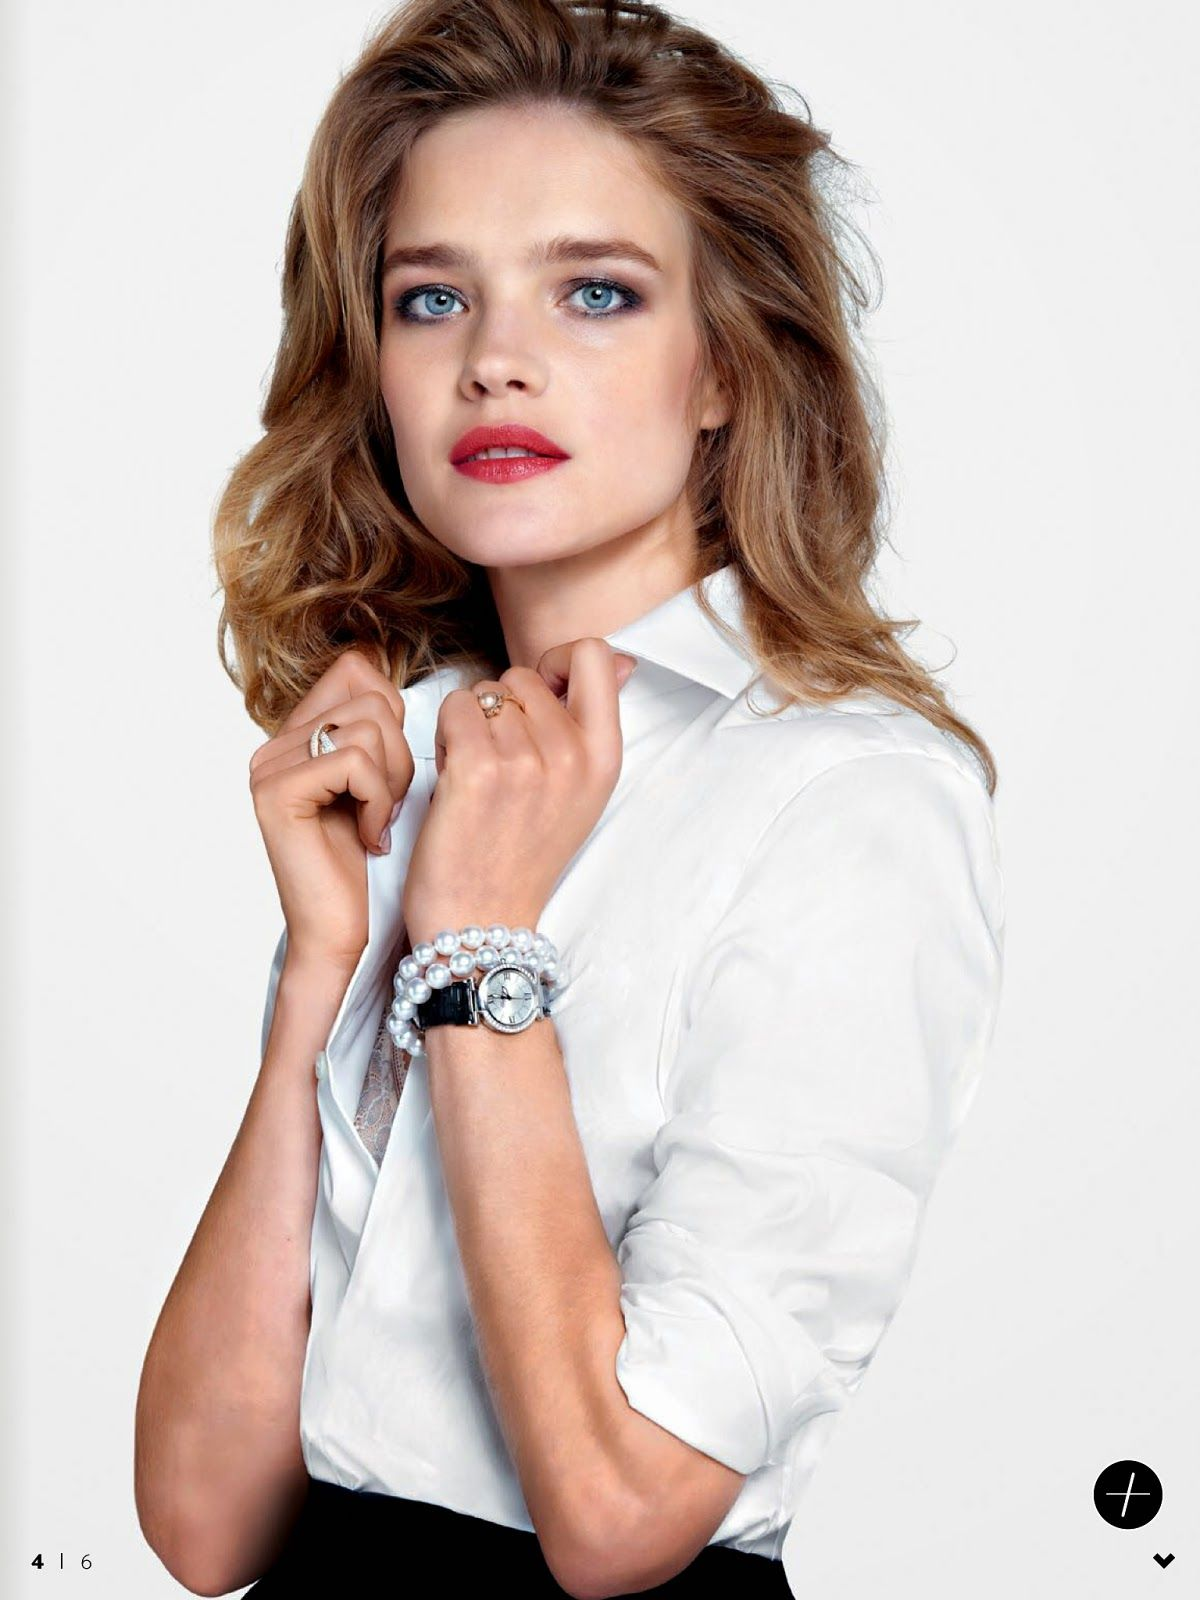 50 Natalia Vodianova Nude Pictures Show Off Her Dashing